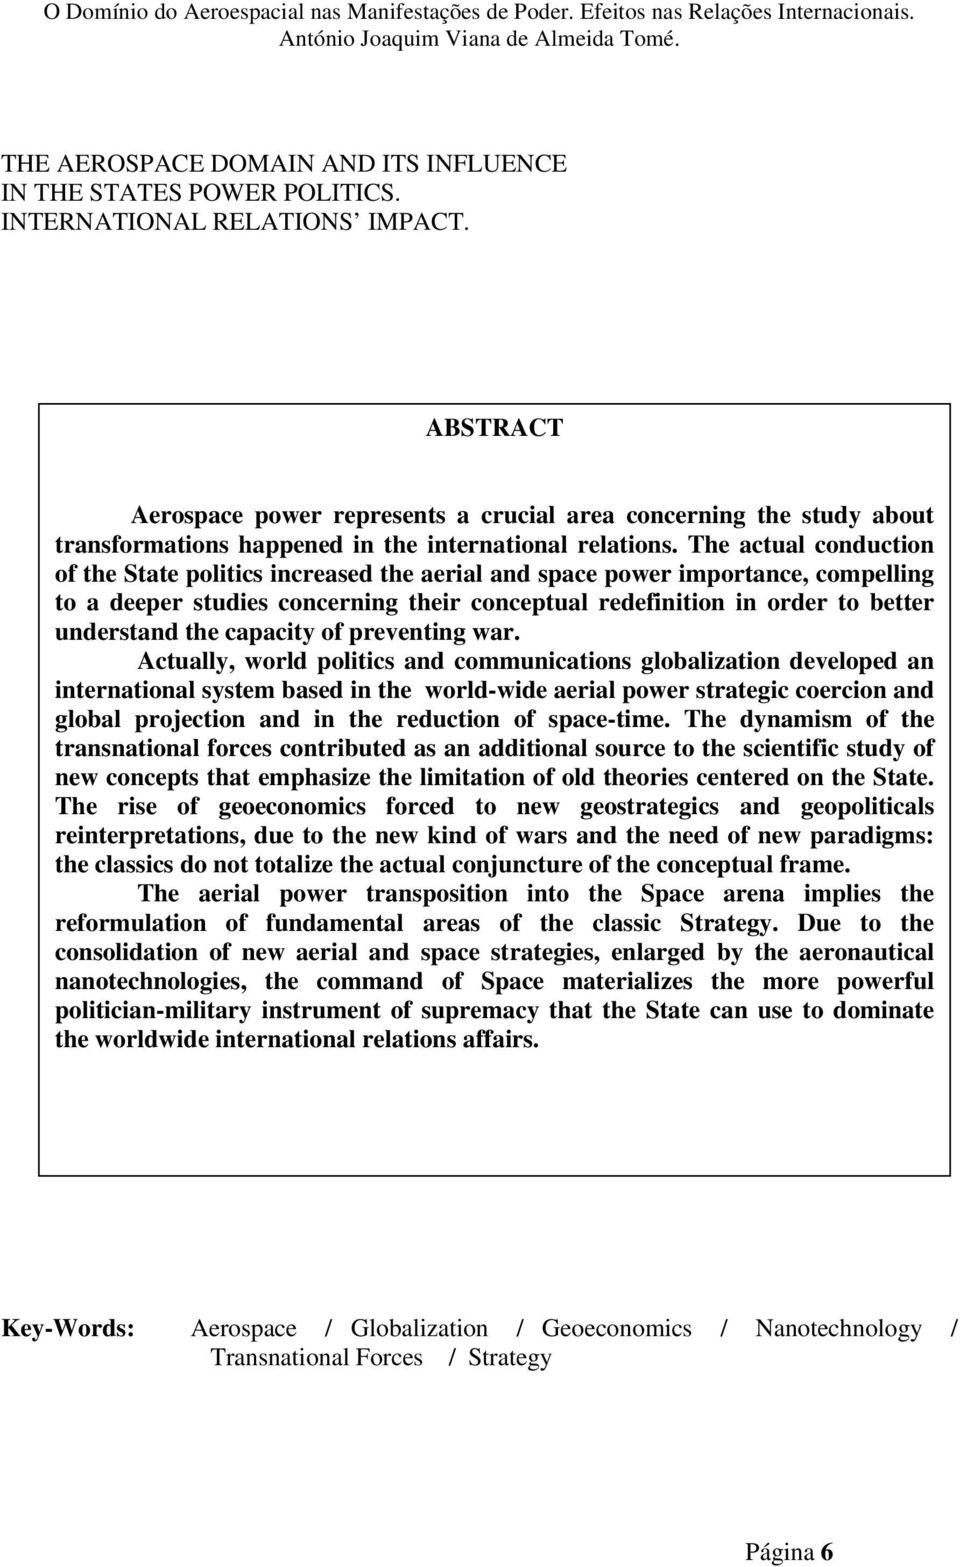 The actual conduction of the State politics increased the aerial and space power importance, compelling to a deeper studies concerning their conceptual redefinition in order to better understand the